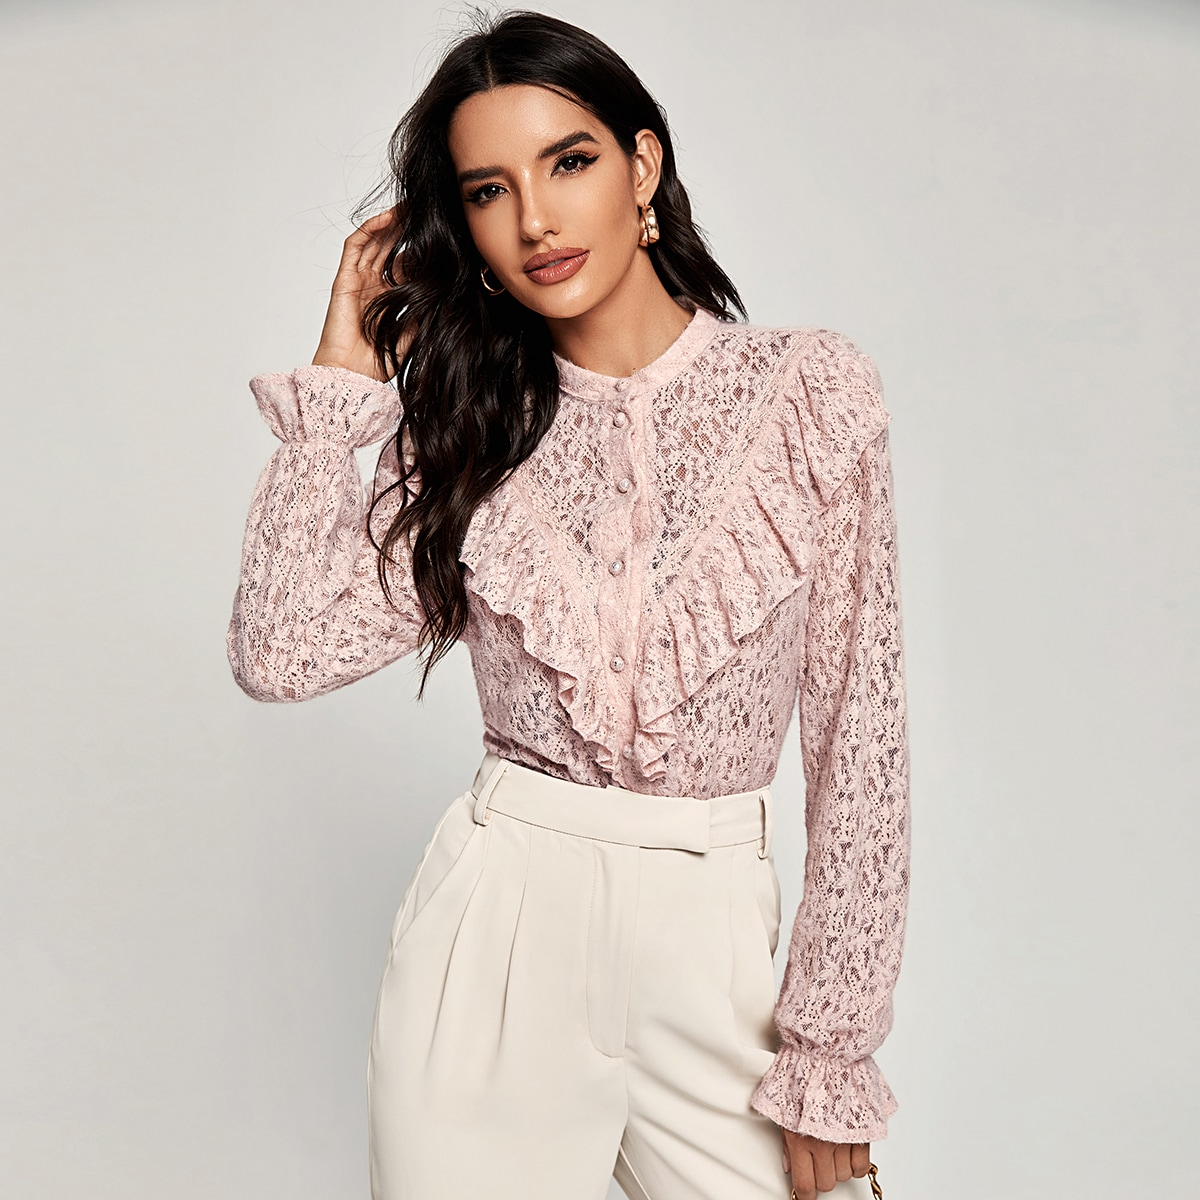 Solid Lace Ruffle Trim Blouse